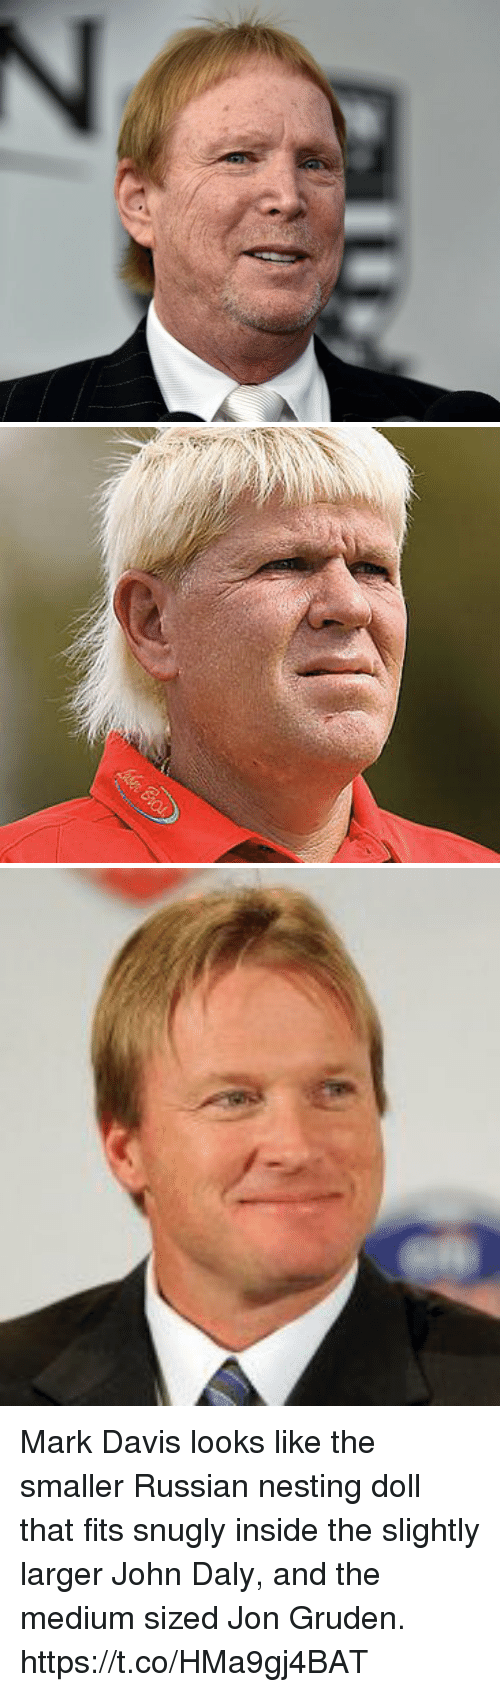 nesting: Mark Davis looks like the smaller Russian nesting doll that fits snugly inside the slightly larger John Daly, and the medium sized Jon Gruden. https://t.co/HMa9gj4BAT